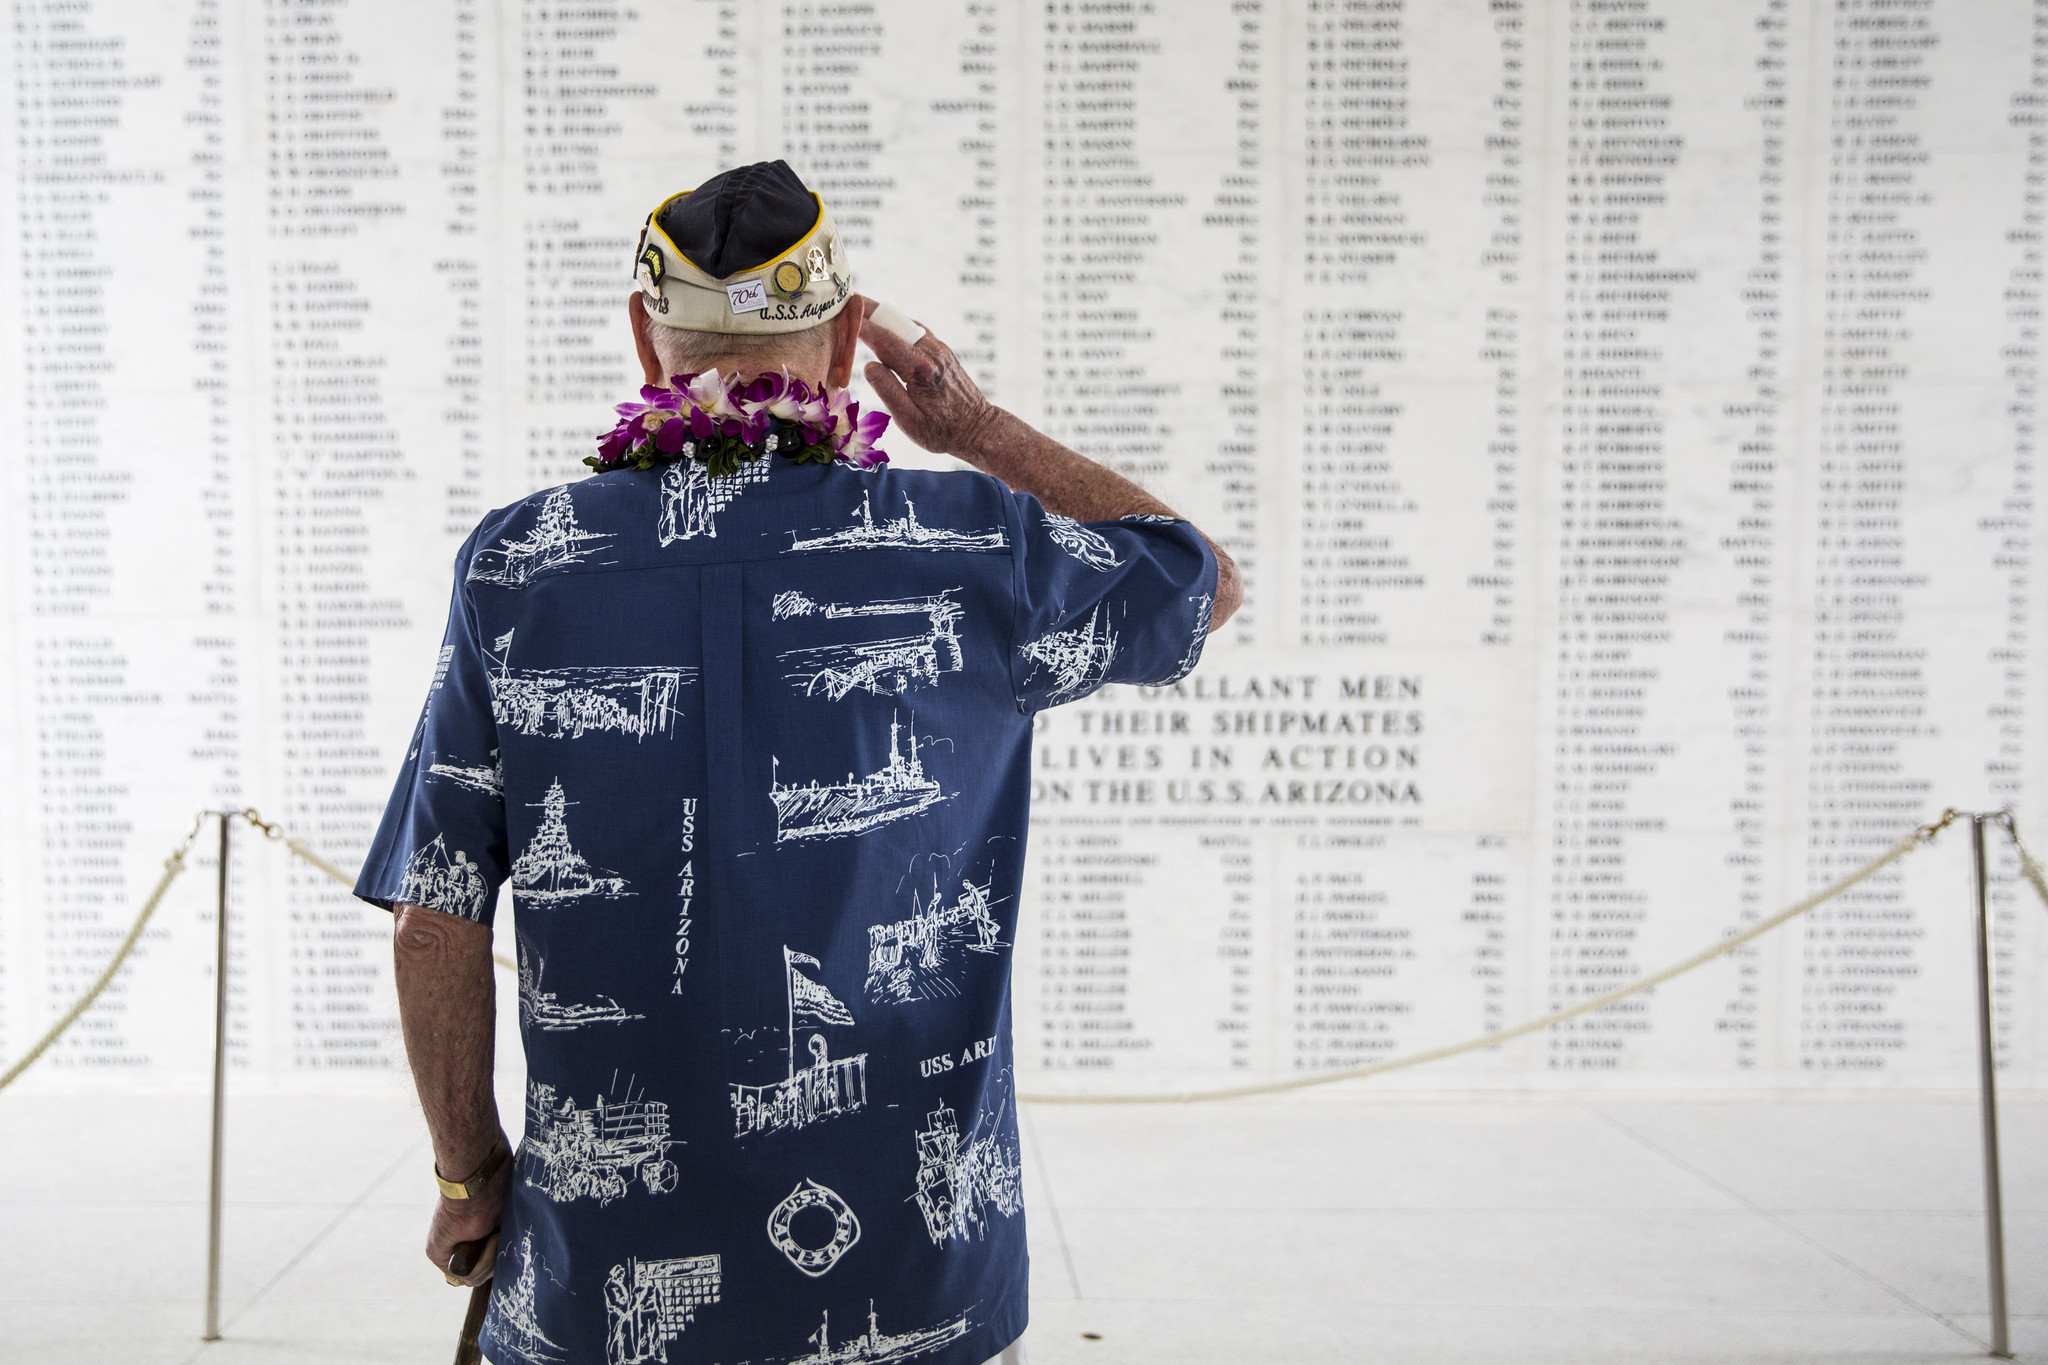 Remains of last U.S. sailors killed in Pearl Harbor attack identified